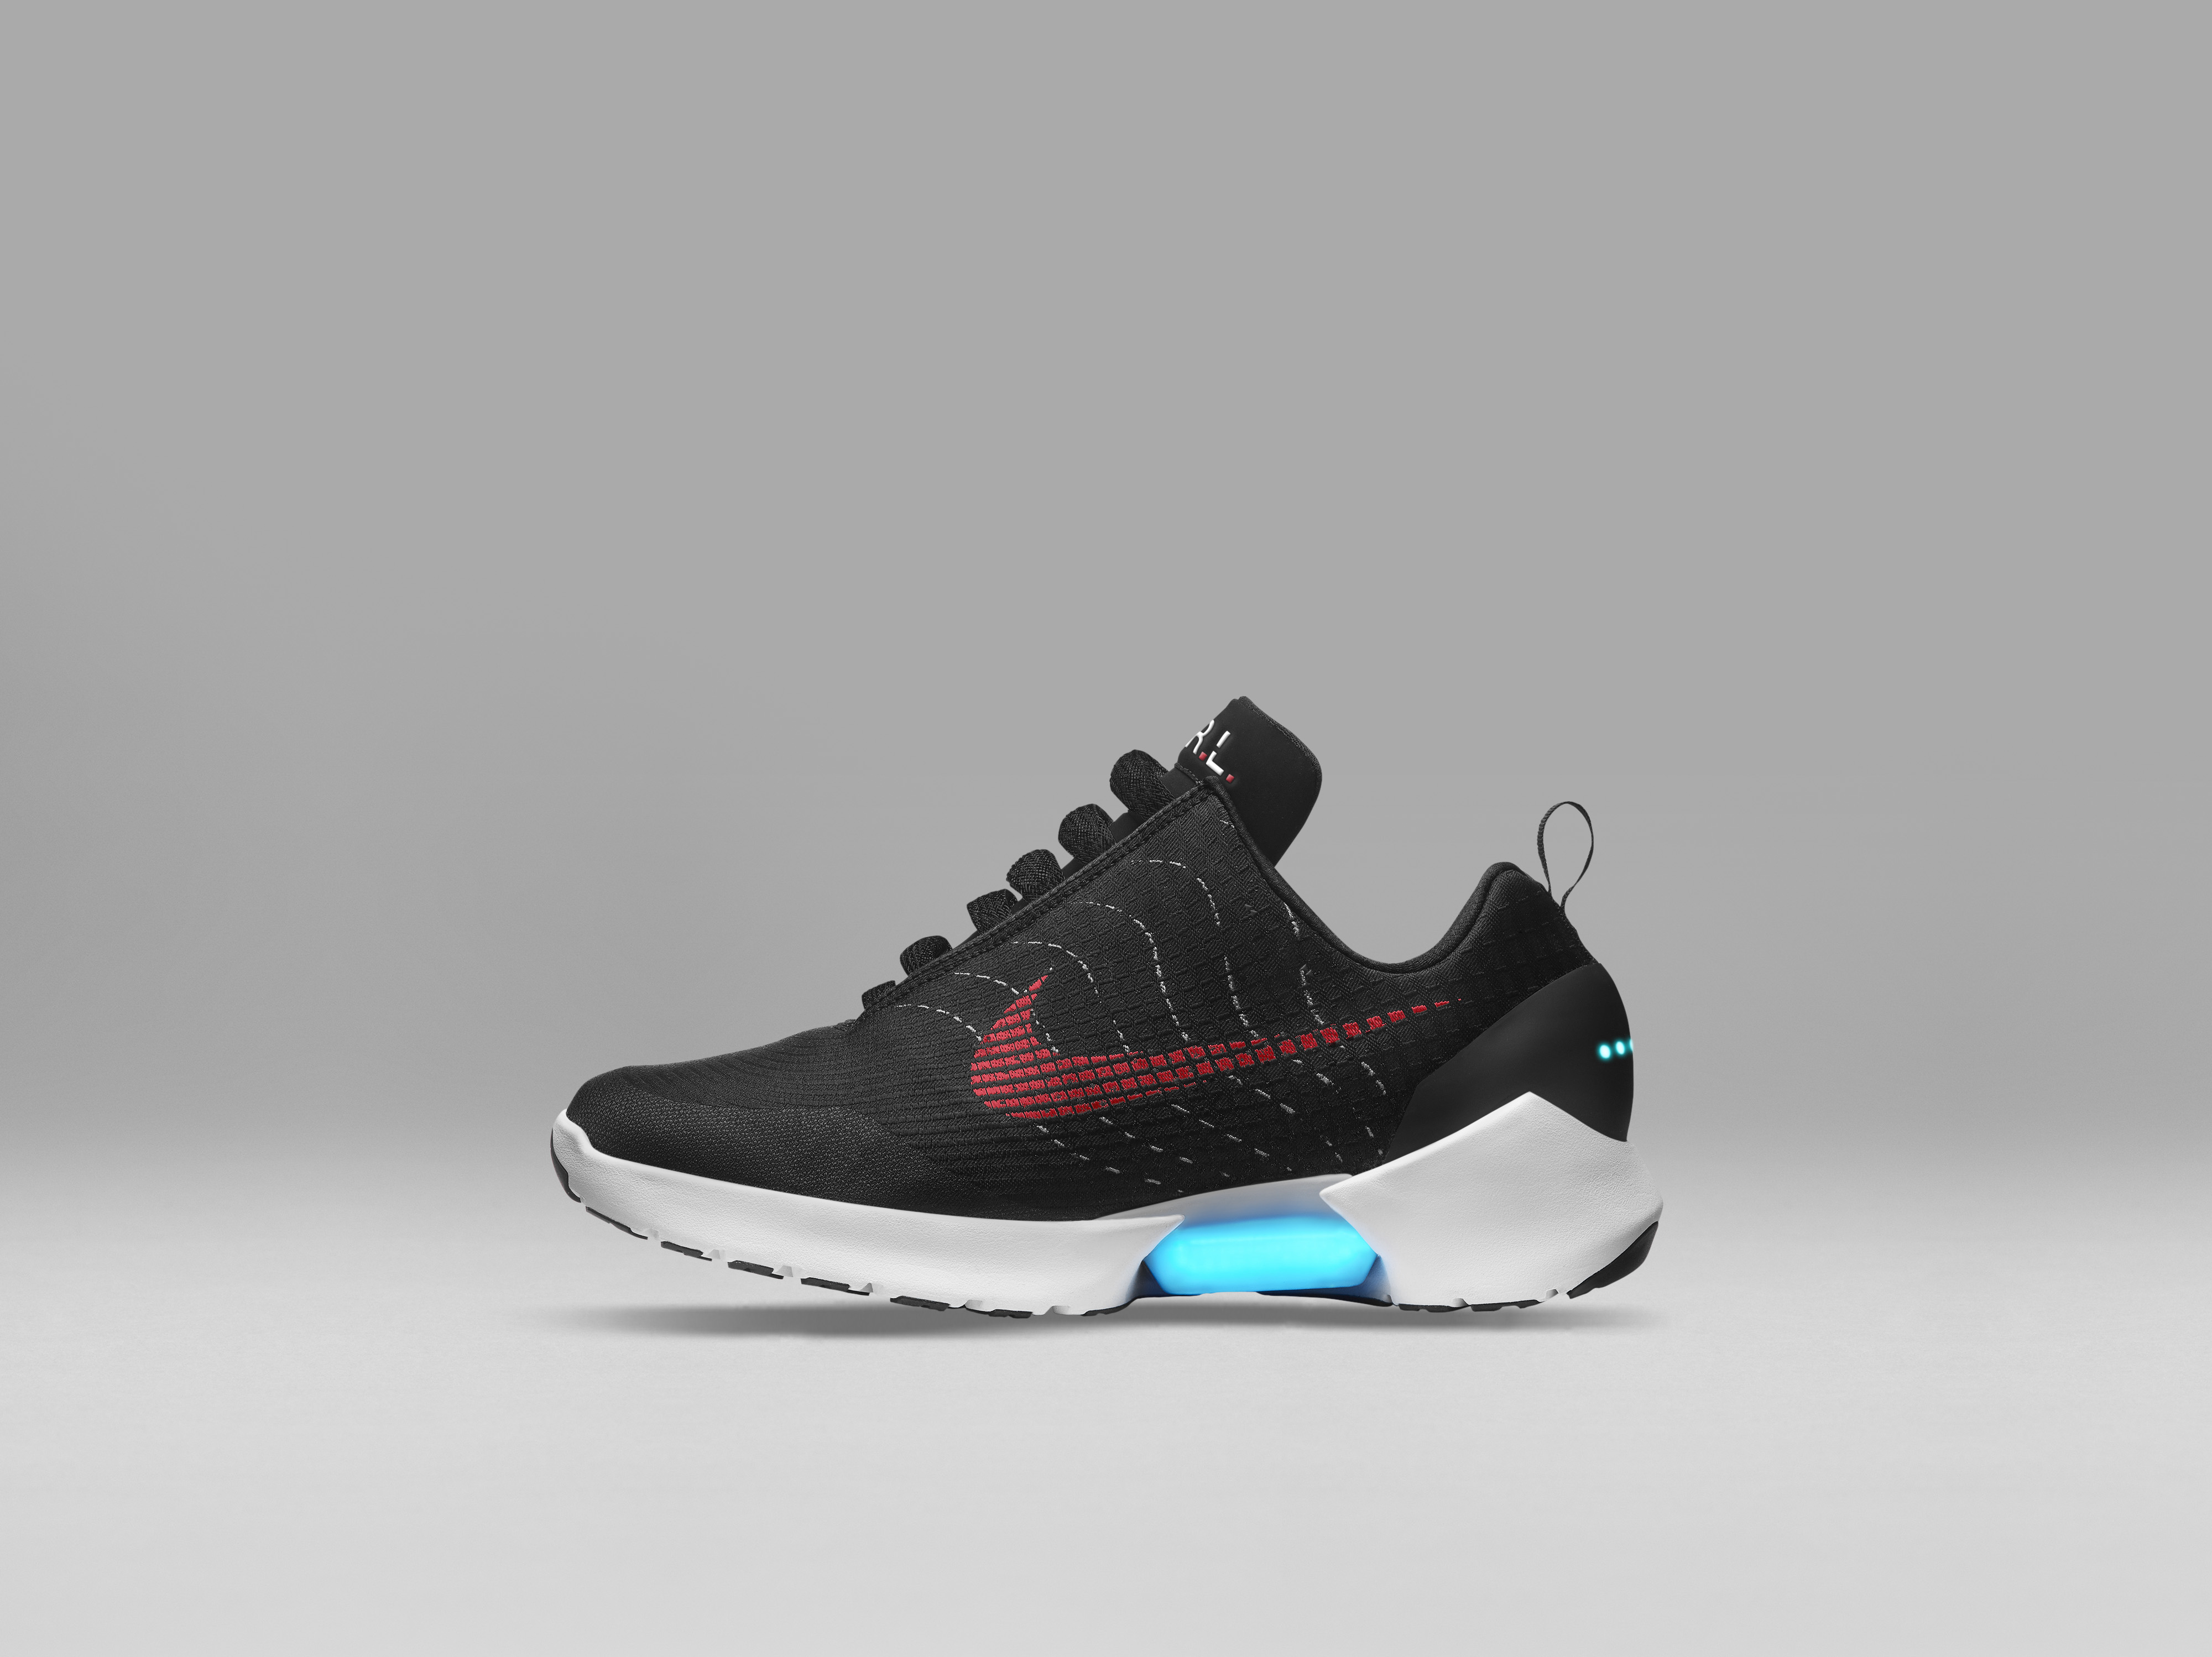 The Nike Hyperadapt 1.0 to Release in Black/White-Red ...